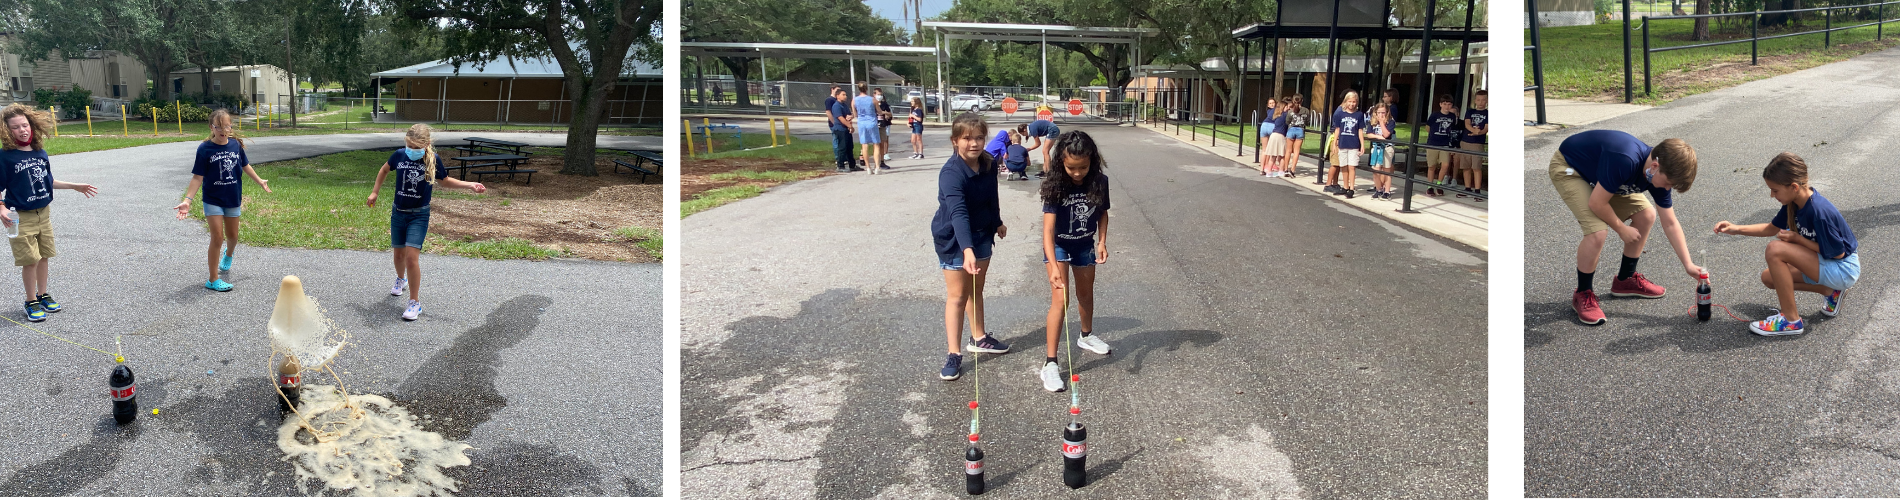 Students experimenting with Mentos and soda